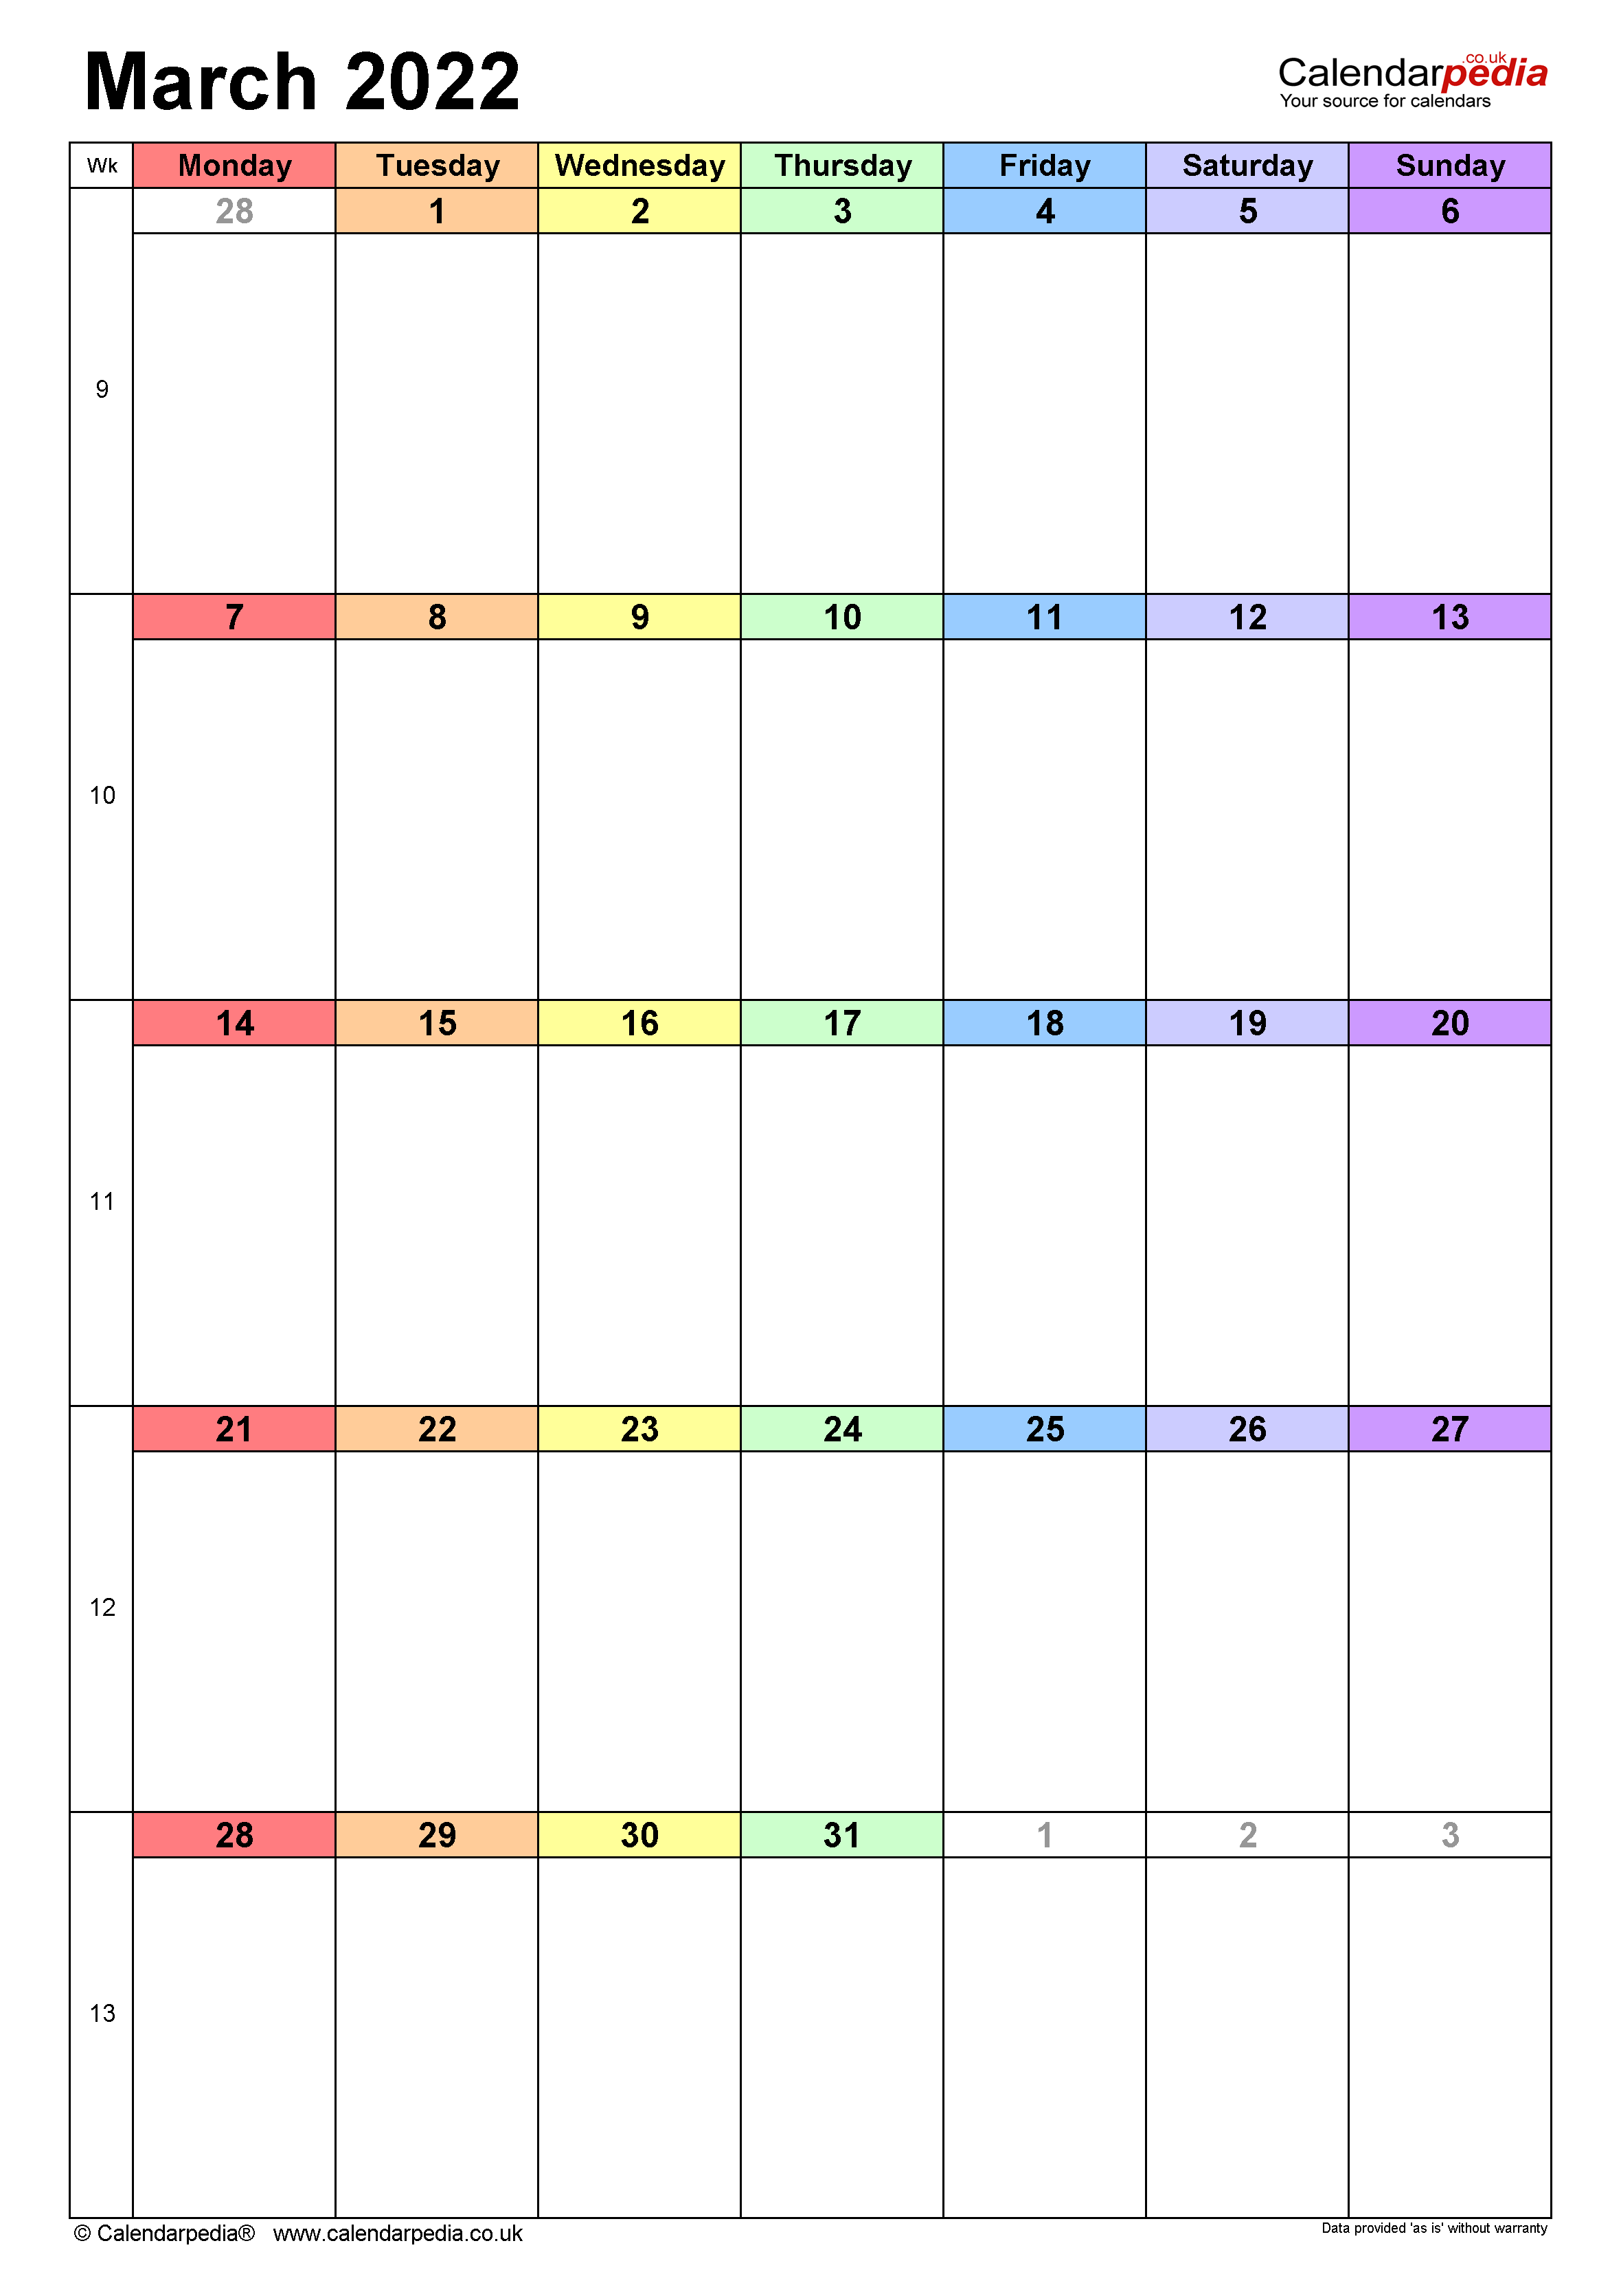 Calendar March 2022 UK with Excel, Word and PDF templates